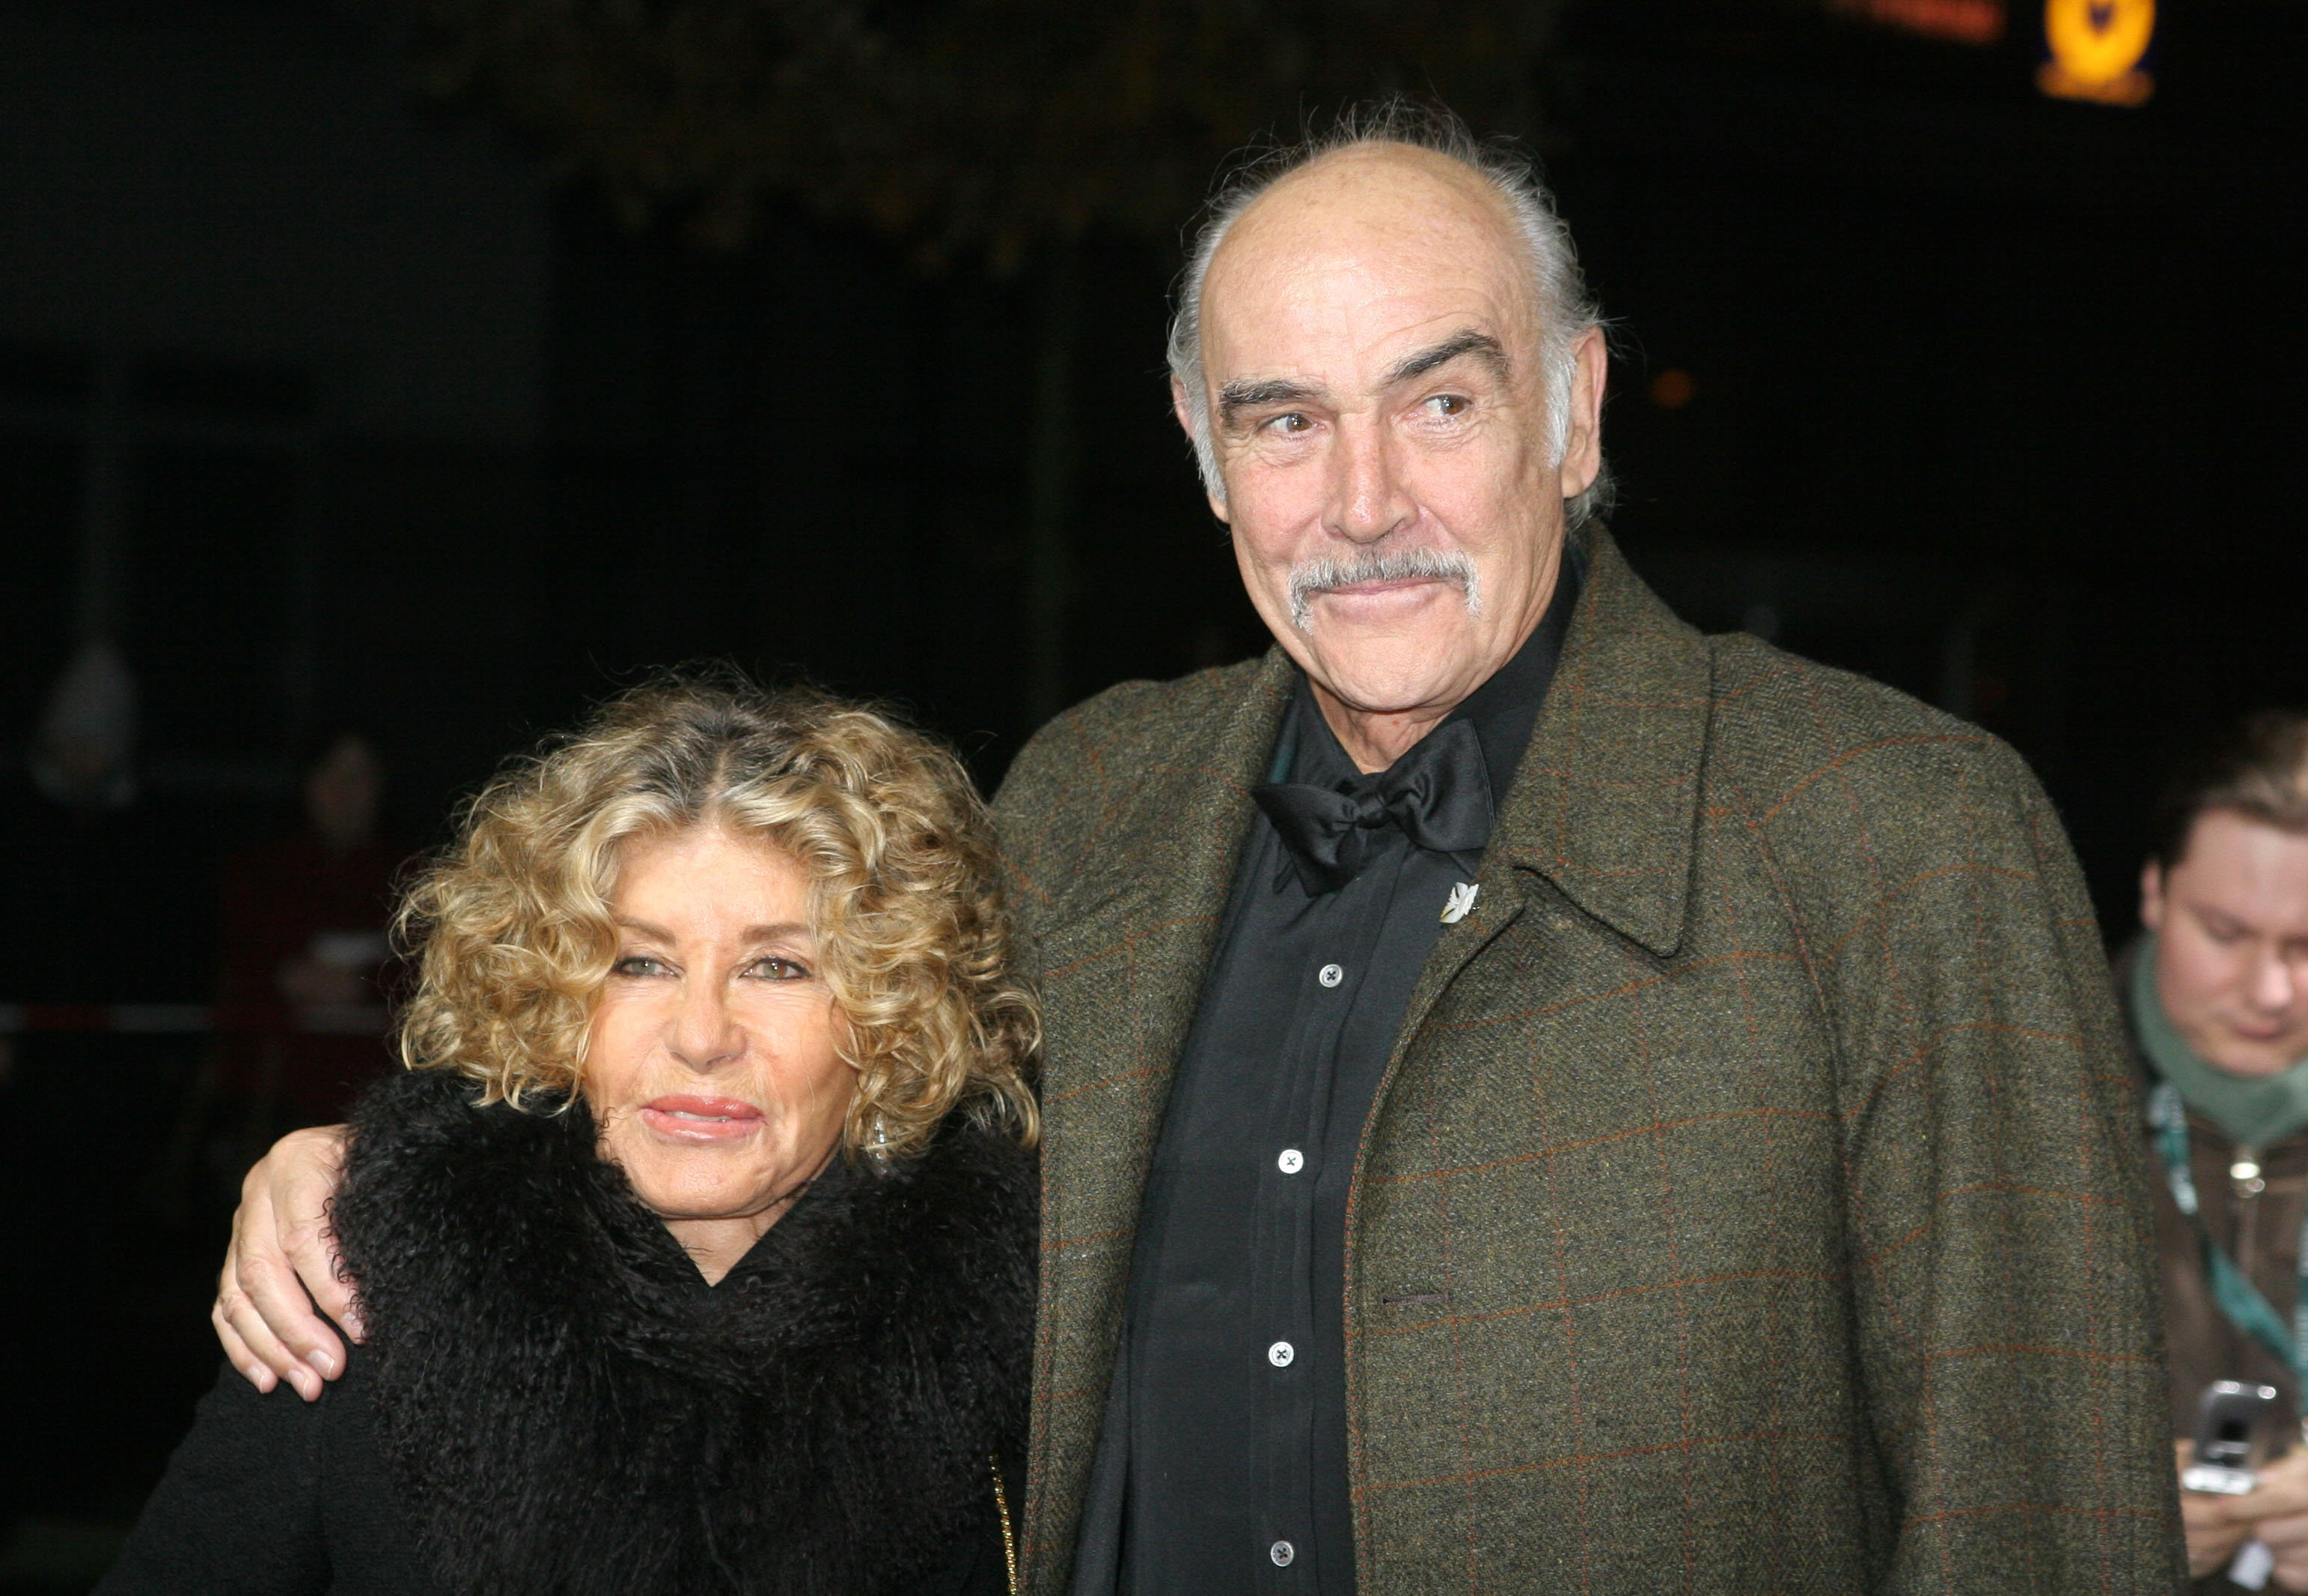 Sean Connery and wife Micheline Roquebrune attend the European Film Awards 2005 on December 3, 2005, in Berlin, Germany. | Source: Getty Images.